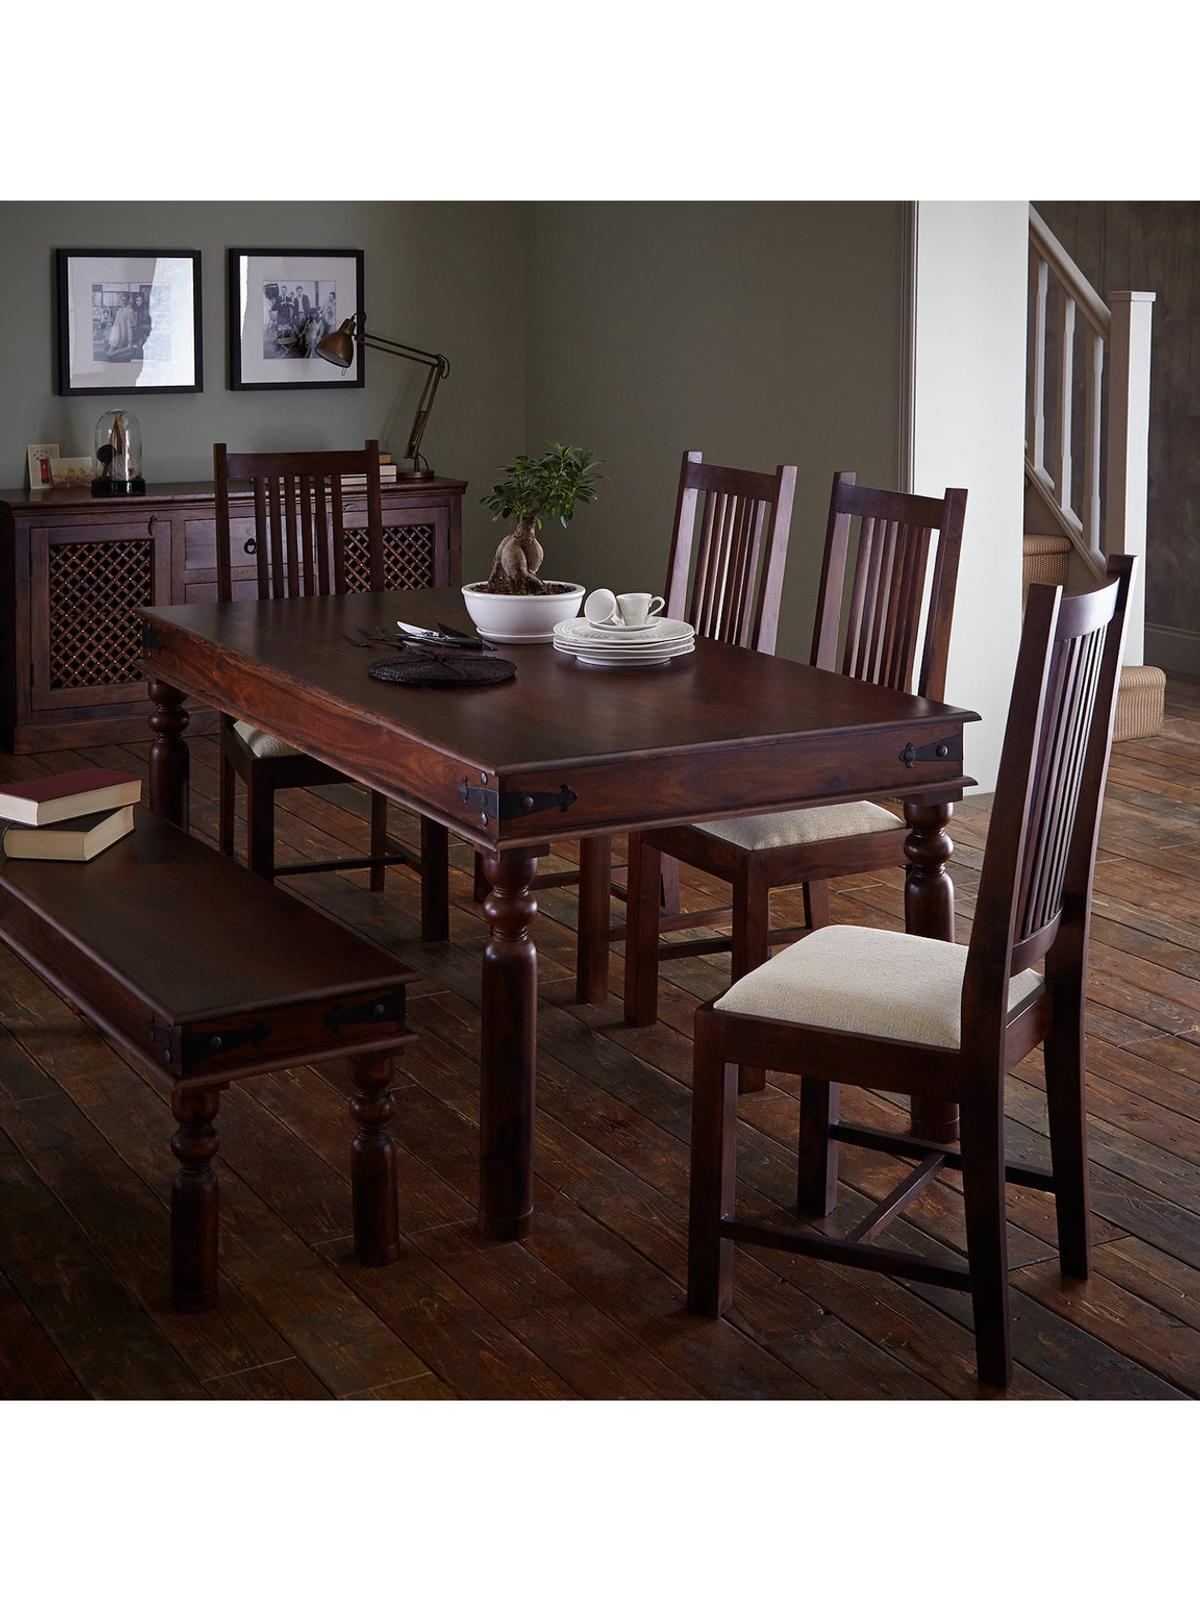 John Lewis Solid Wood dining table + 9 chairs in GU9 Guildford für ...